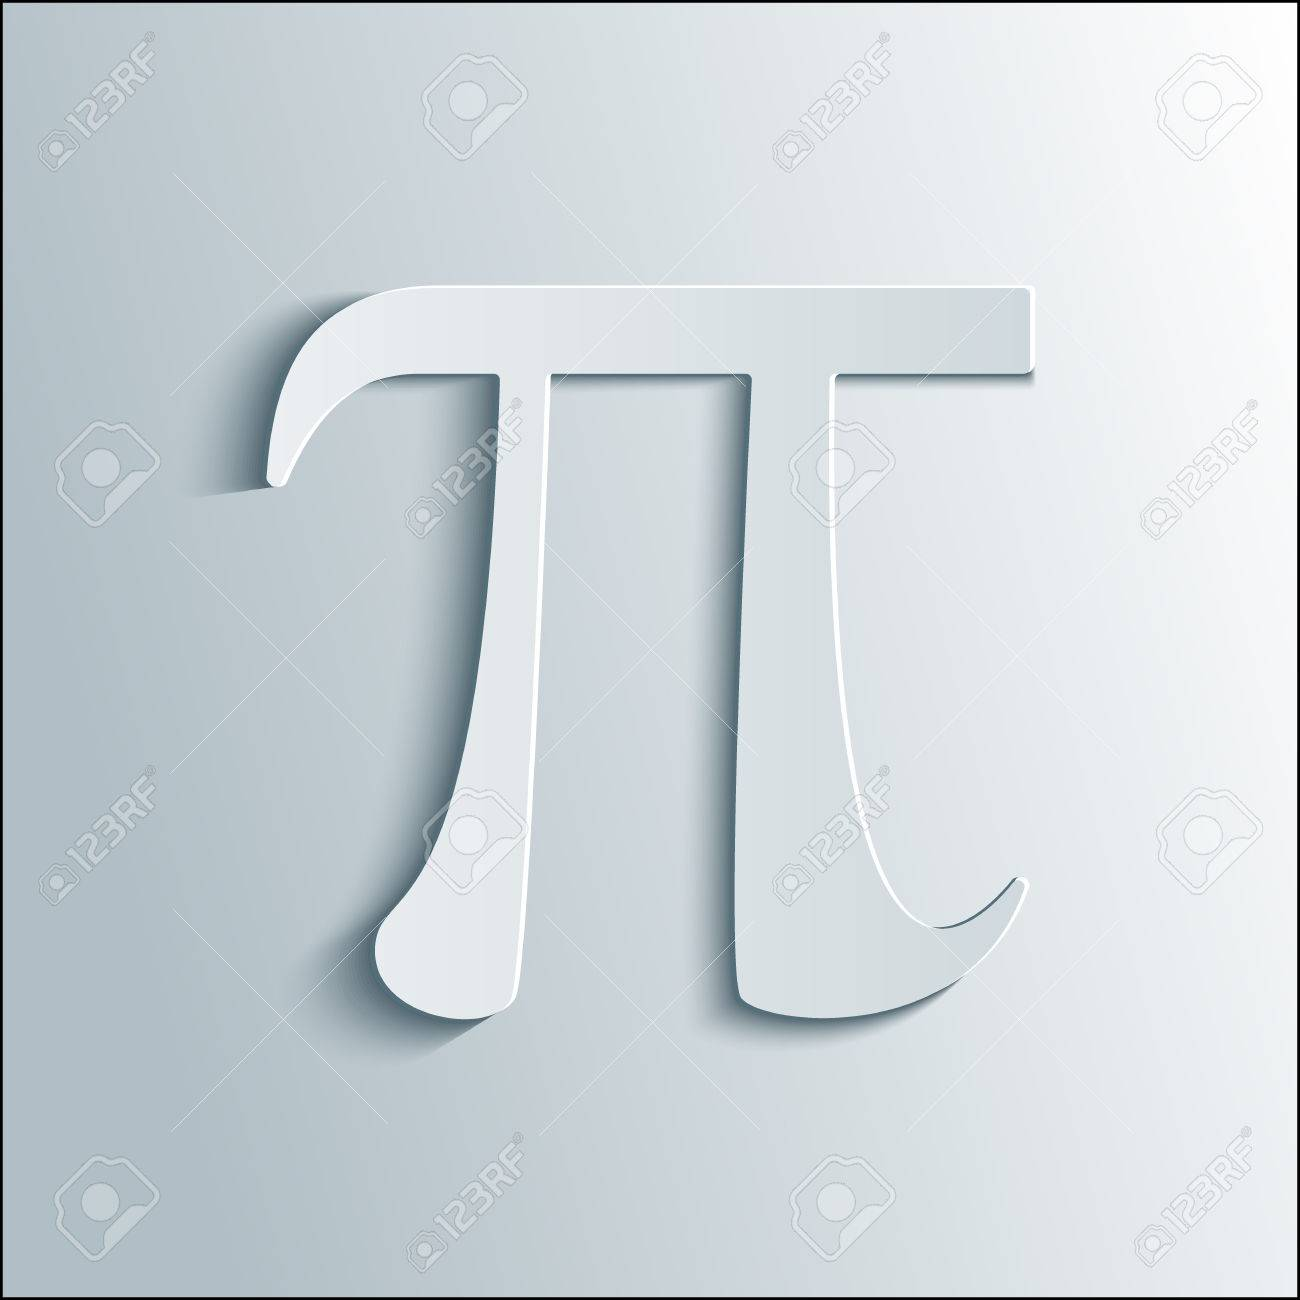 Pi symbol icon pi sign in paper origami 3d style isolated pi symbol icon pi sign in paper origami 3d style isolated illustration stock jeuxipadfo Gallery